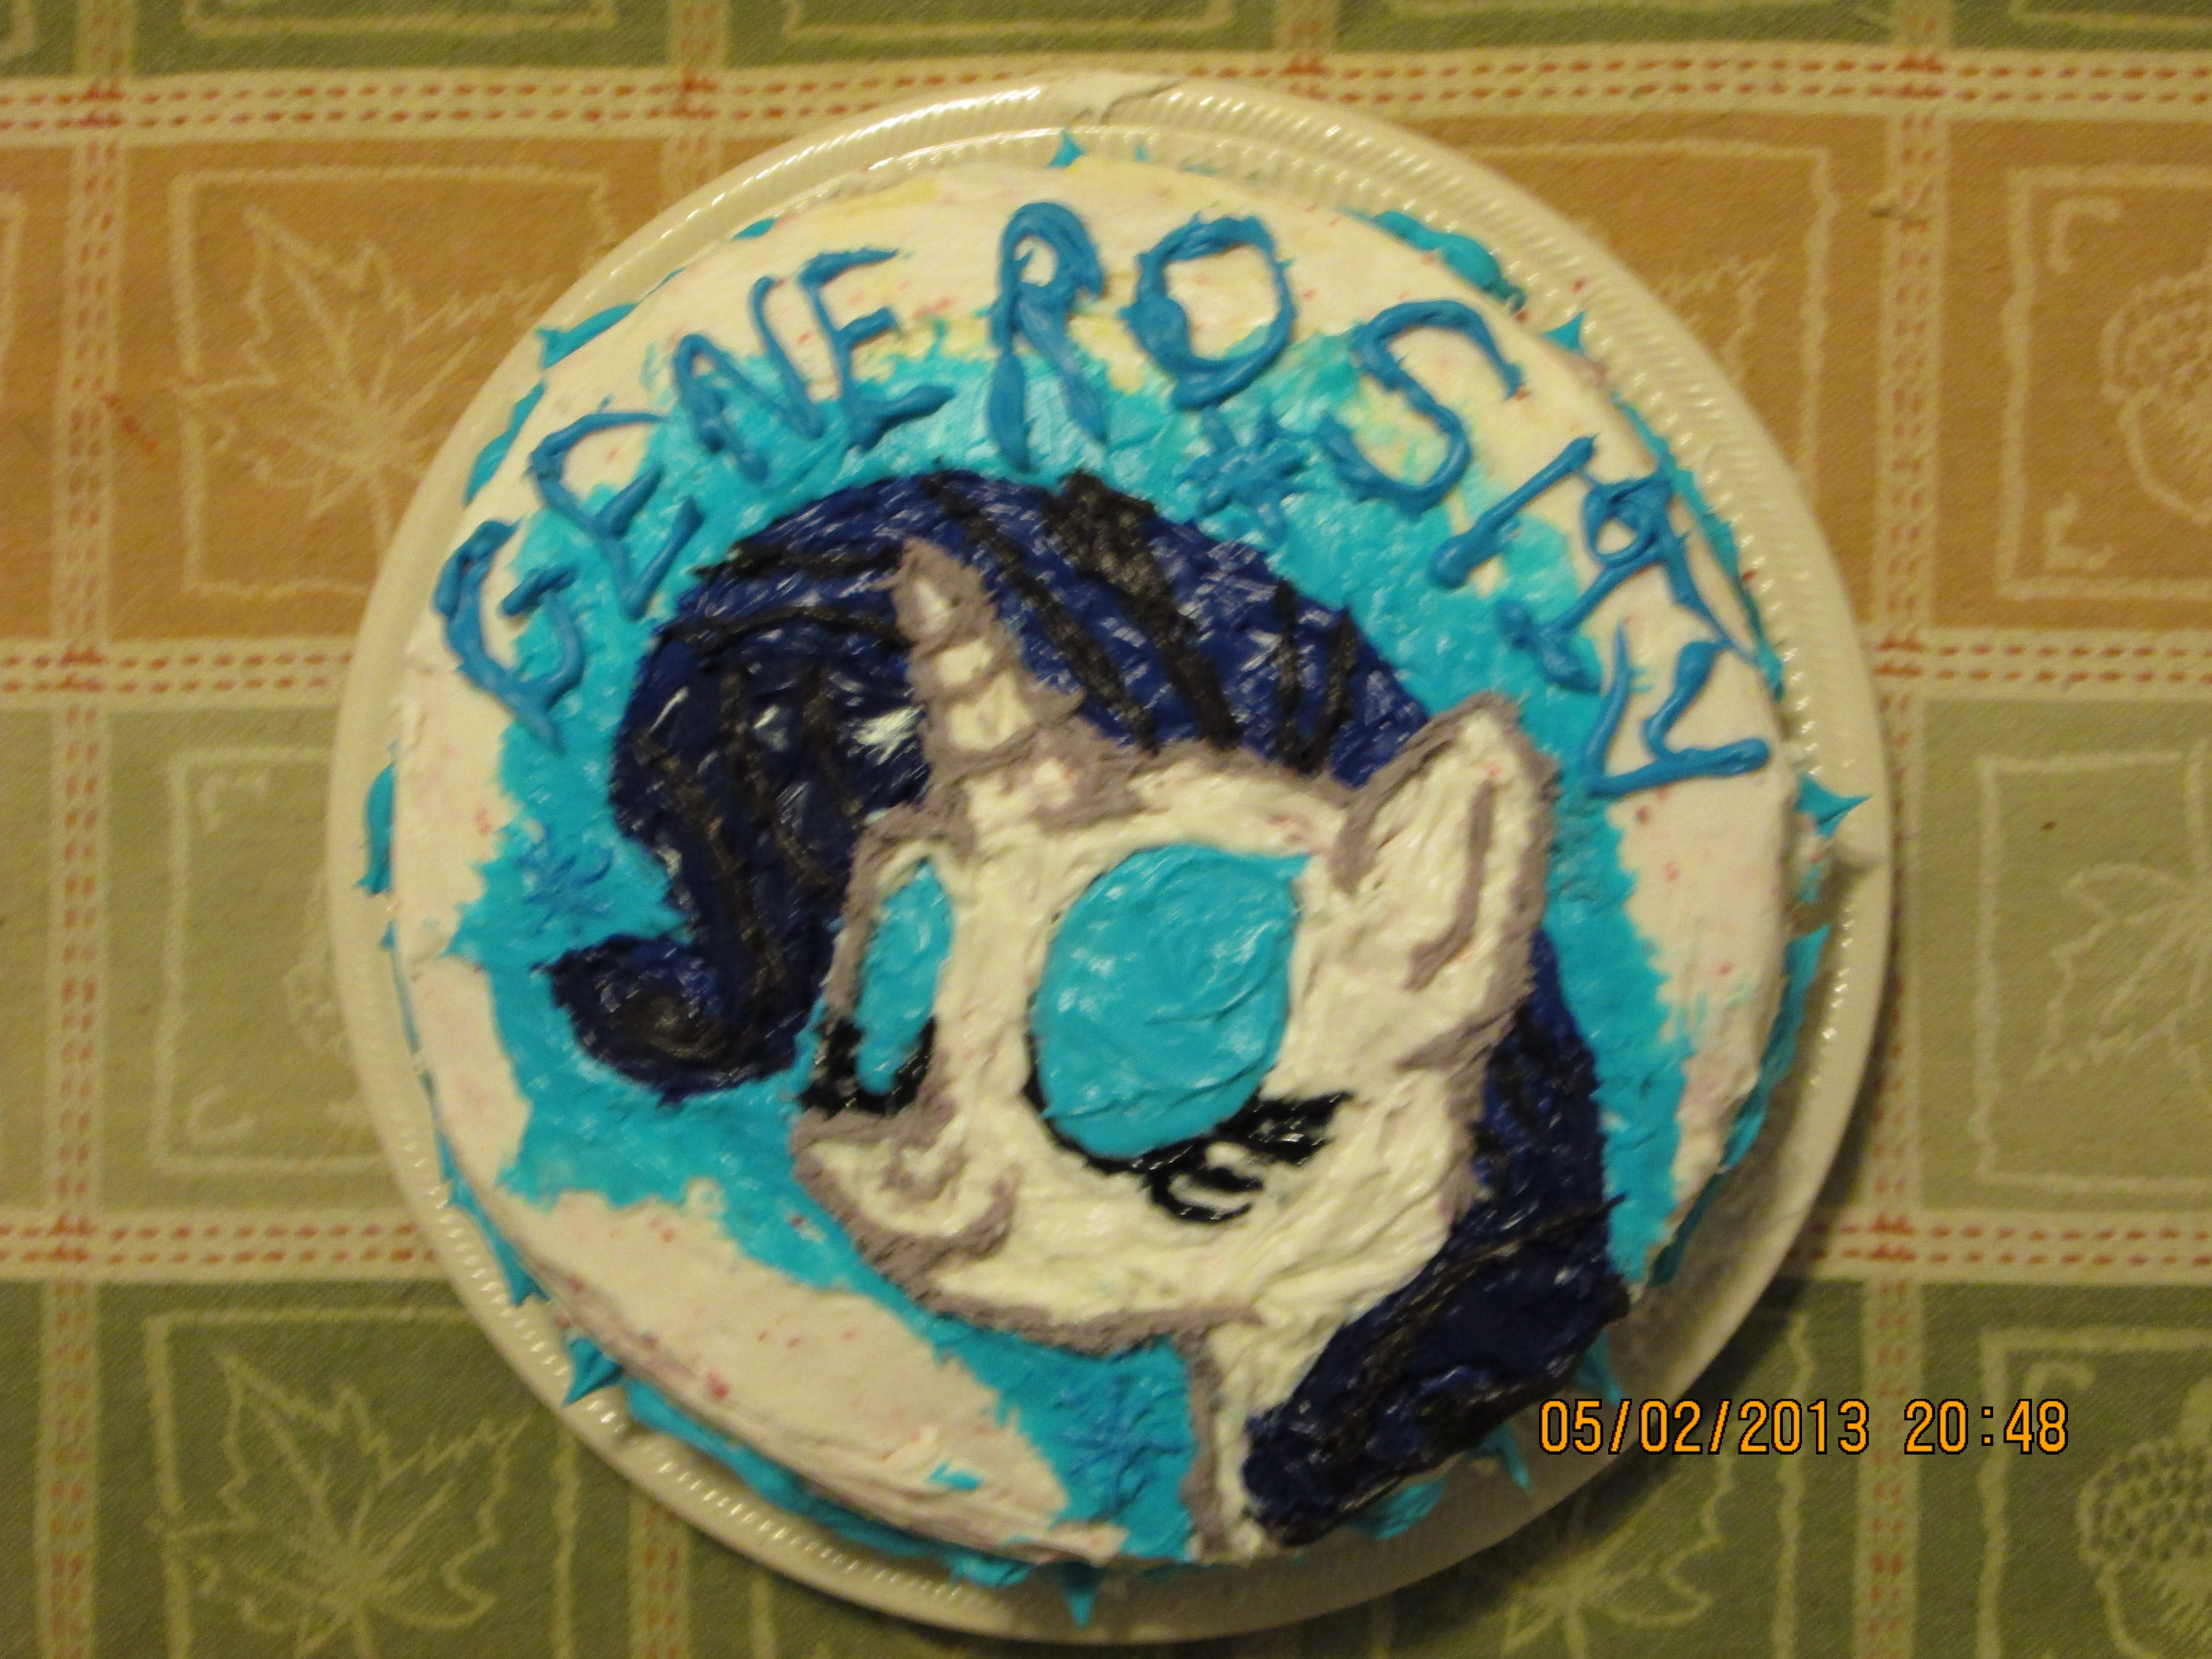 Generosity Cake by SlateofGranite